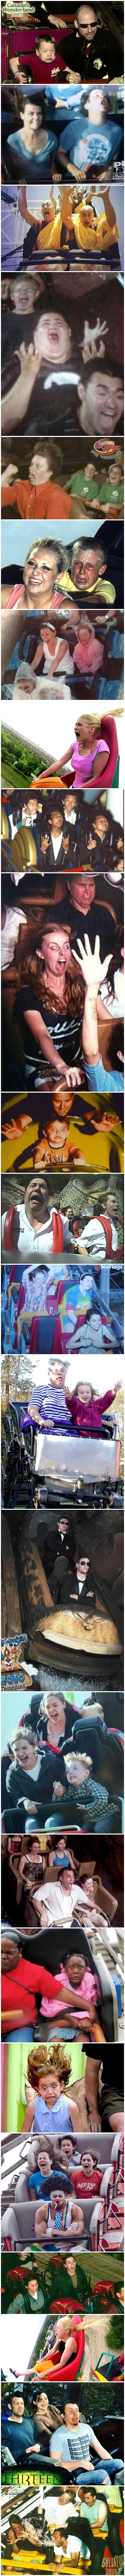 Funny Roller Coaster Rides Picture Collection